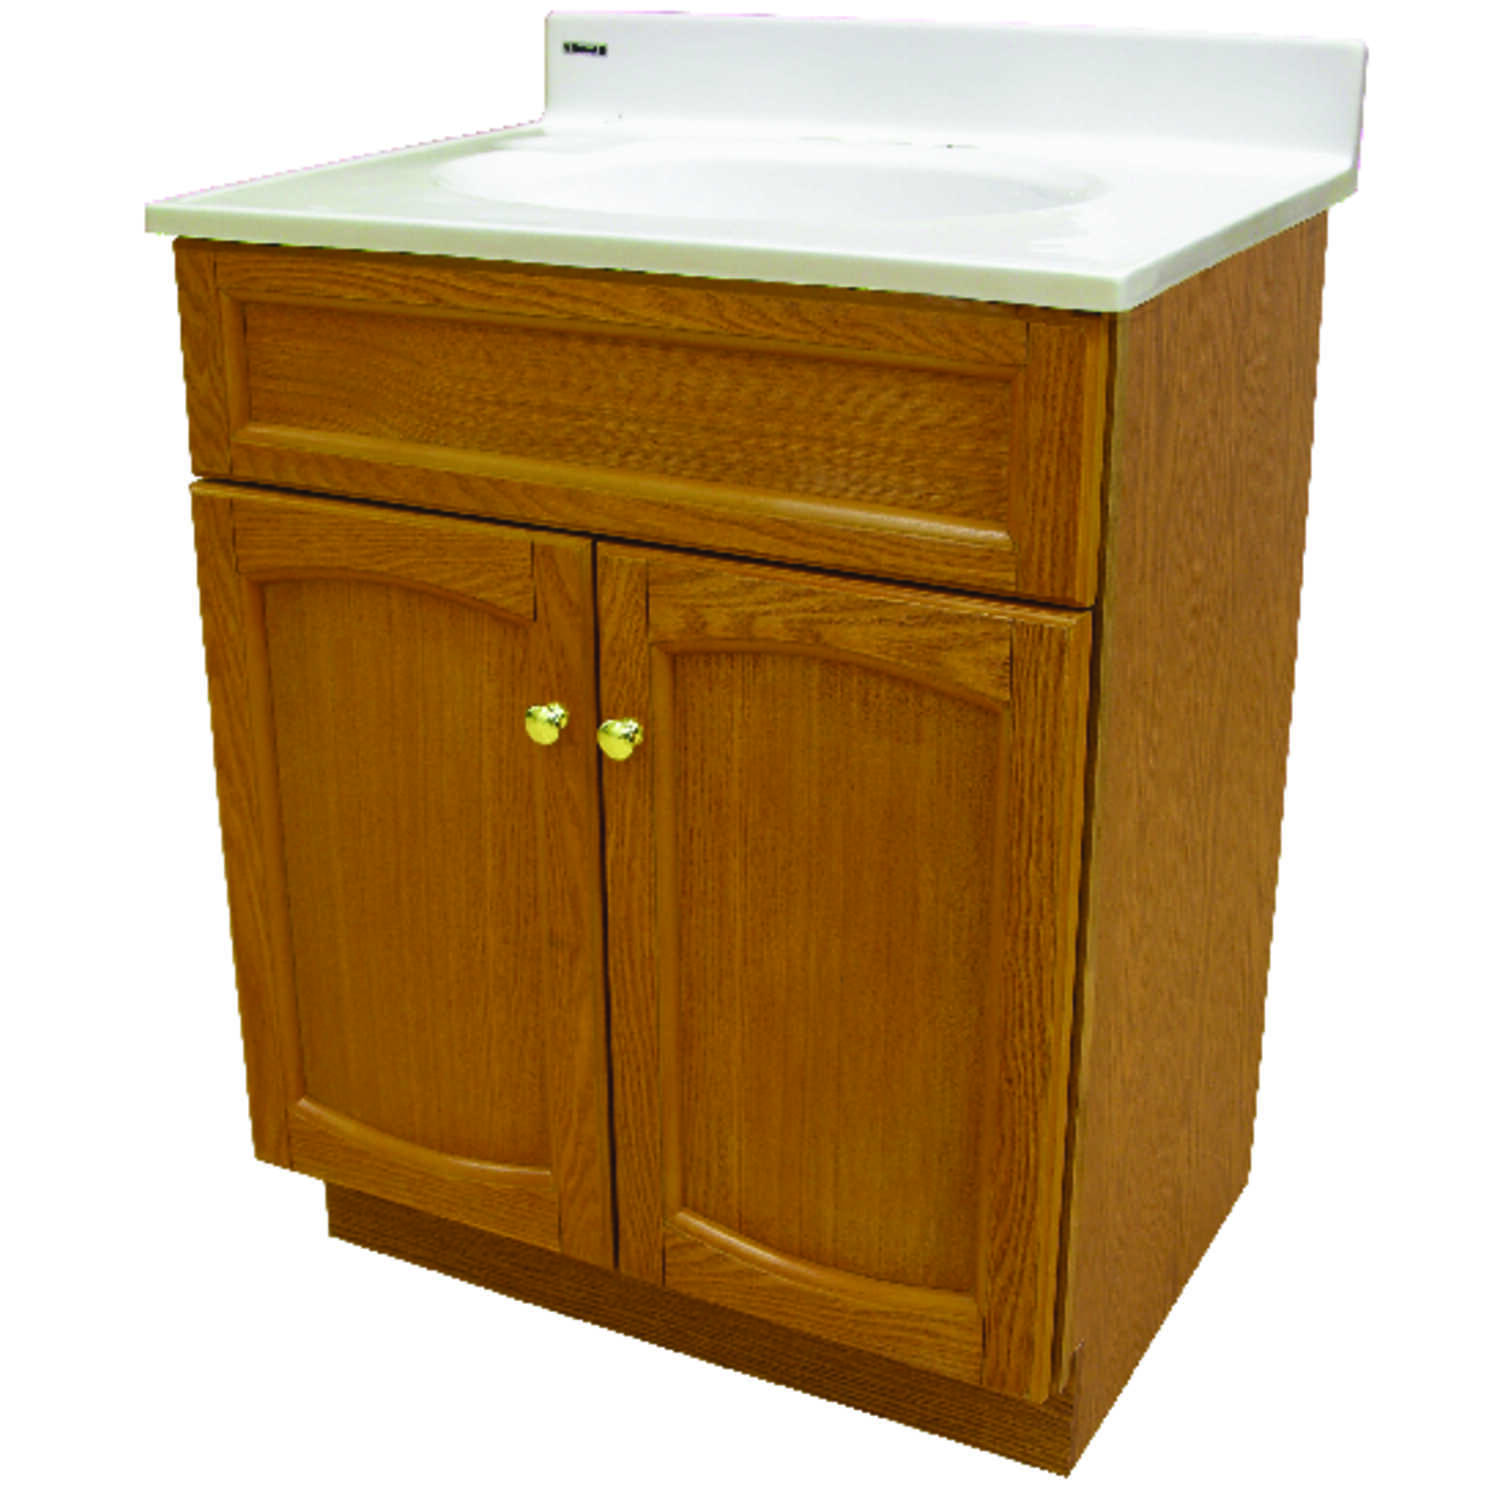 Foremost  Single  Semi-Gloss  Brown  Vanity and Top  34 in. H x 25 in. W x 19 in. D